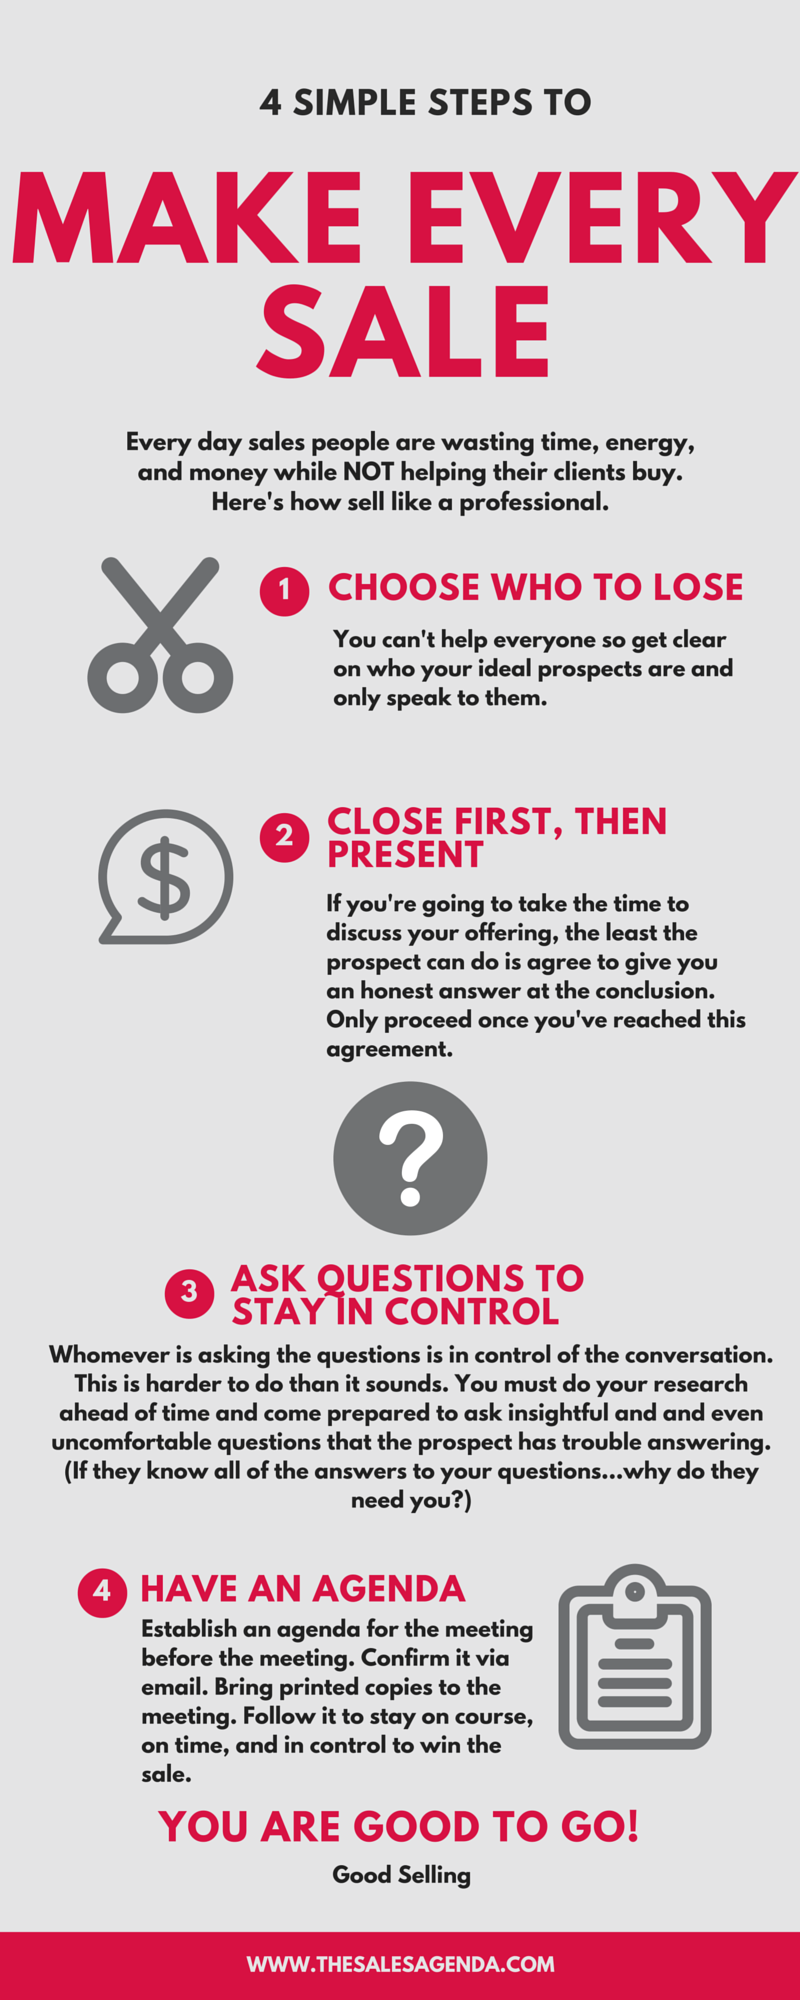 4_simple_steps_to_make_every_sale.png